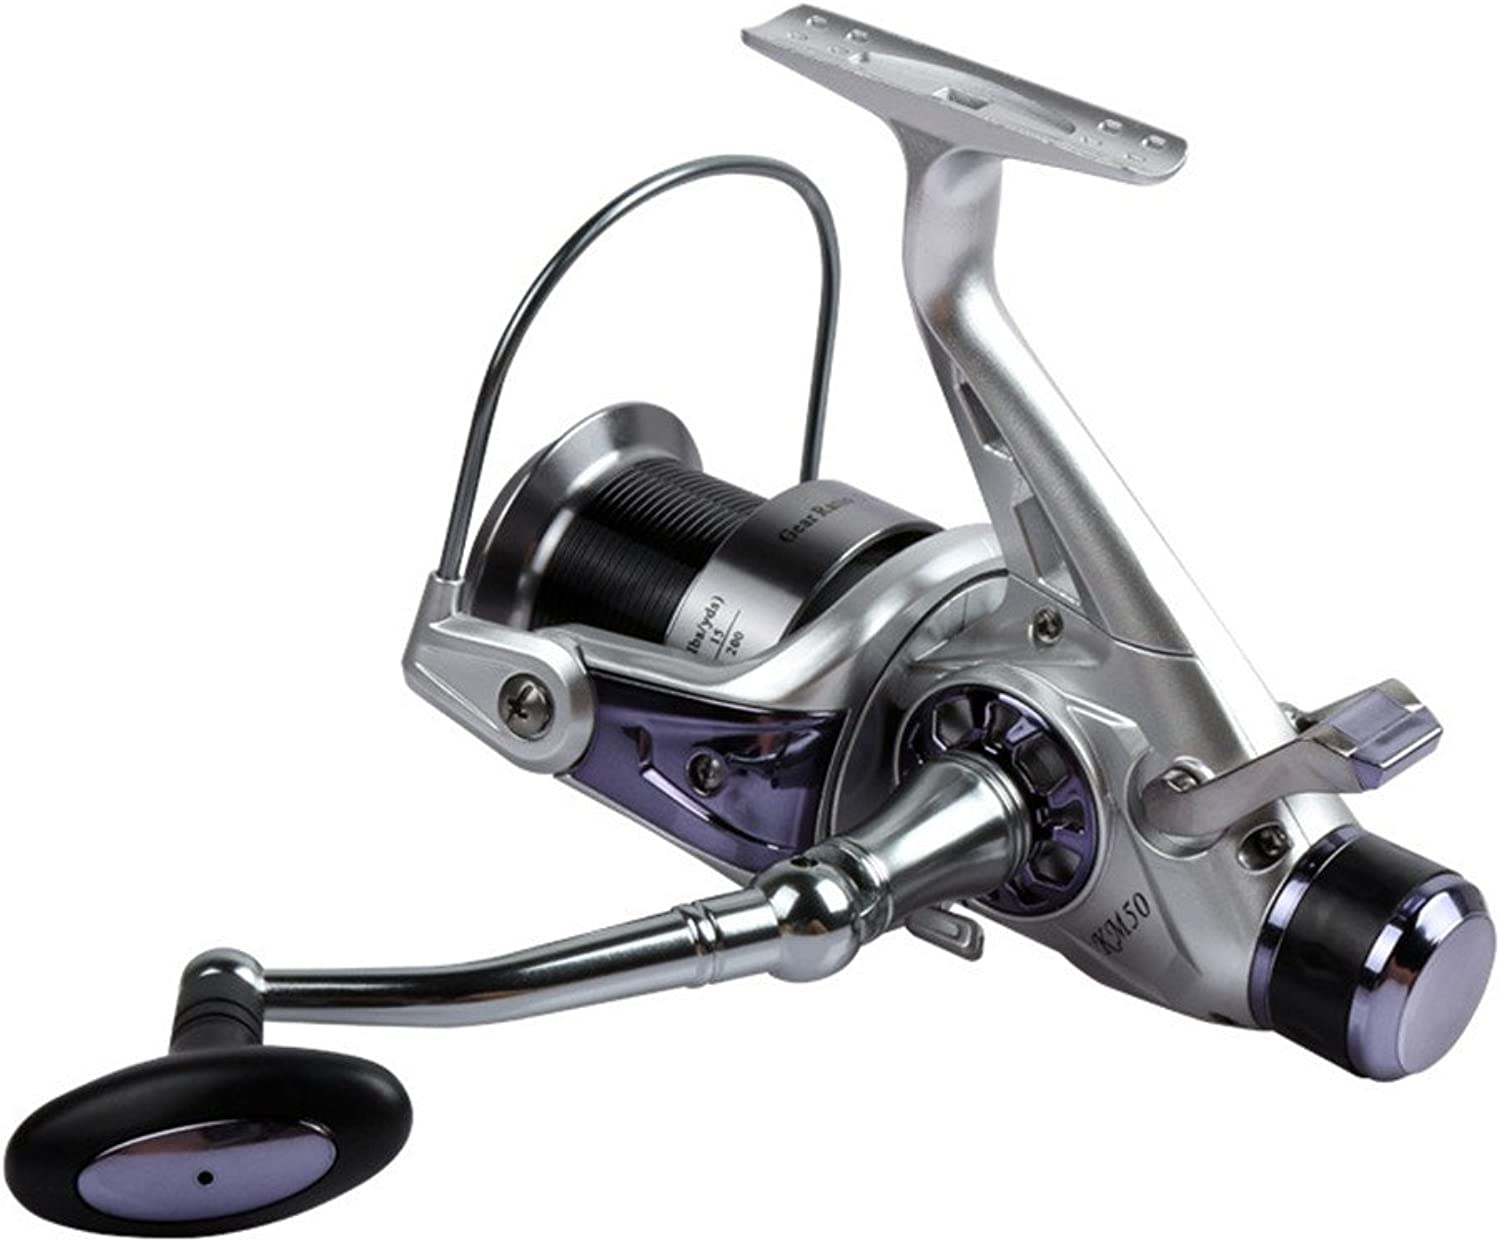 Fishing reels for Saltwater Freshwater Fishing Spinning Fishing Reel 11+1 Bearings Left Right Interchangeable Handle with Double Drag Brake System (Size   5000)